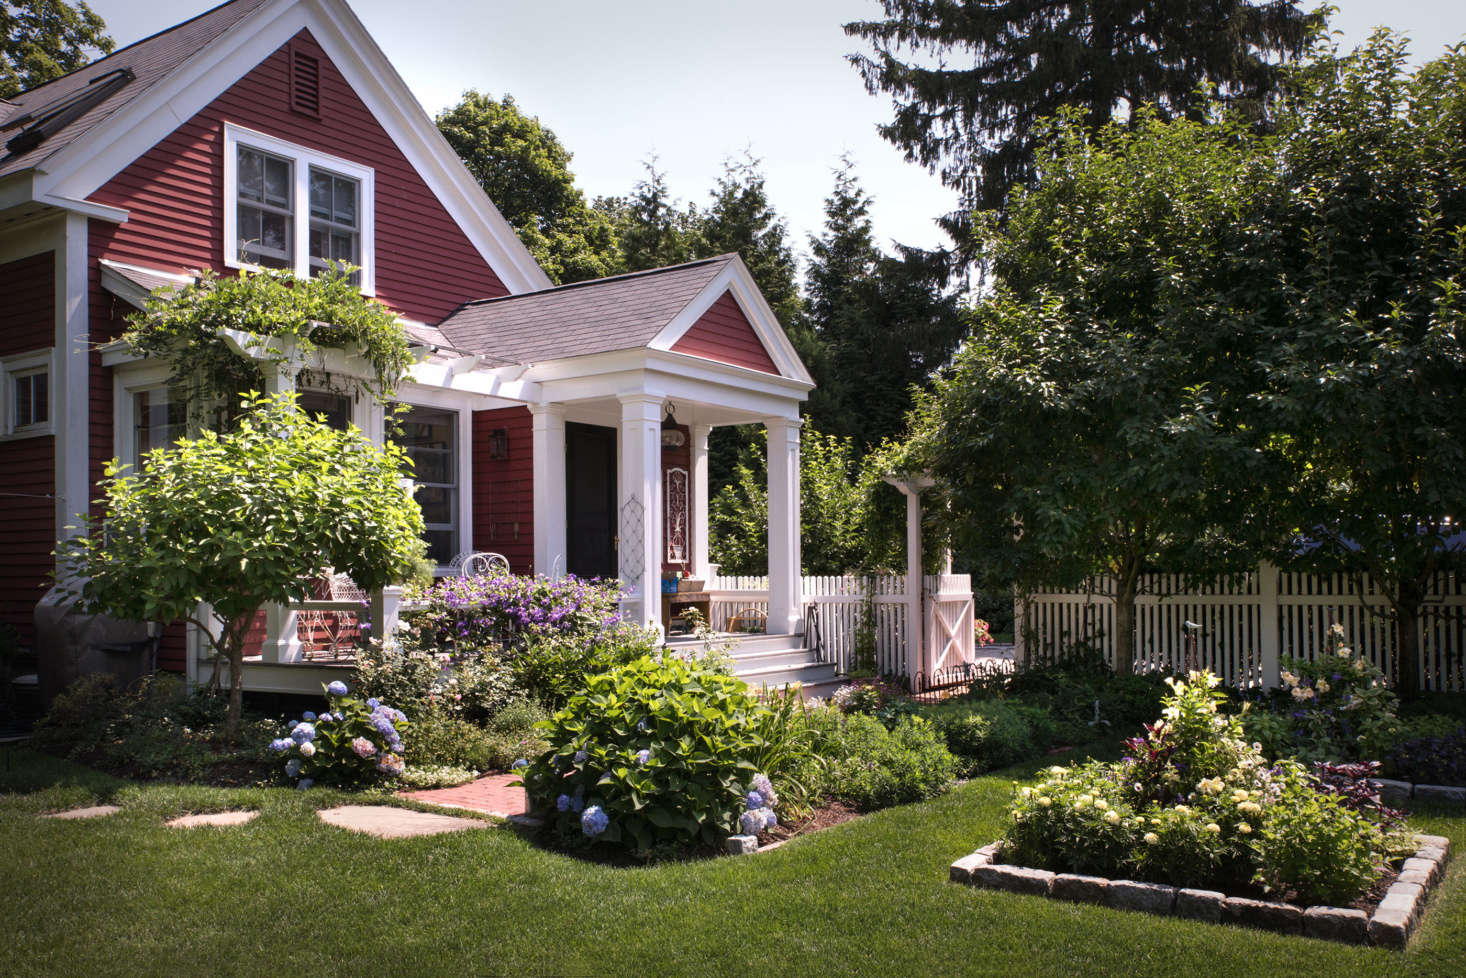 Surrounded by vine-covered pergolas, flowers trees, and perennial borders, the house seems to merge with the garden.